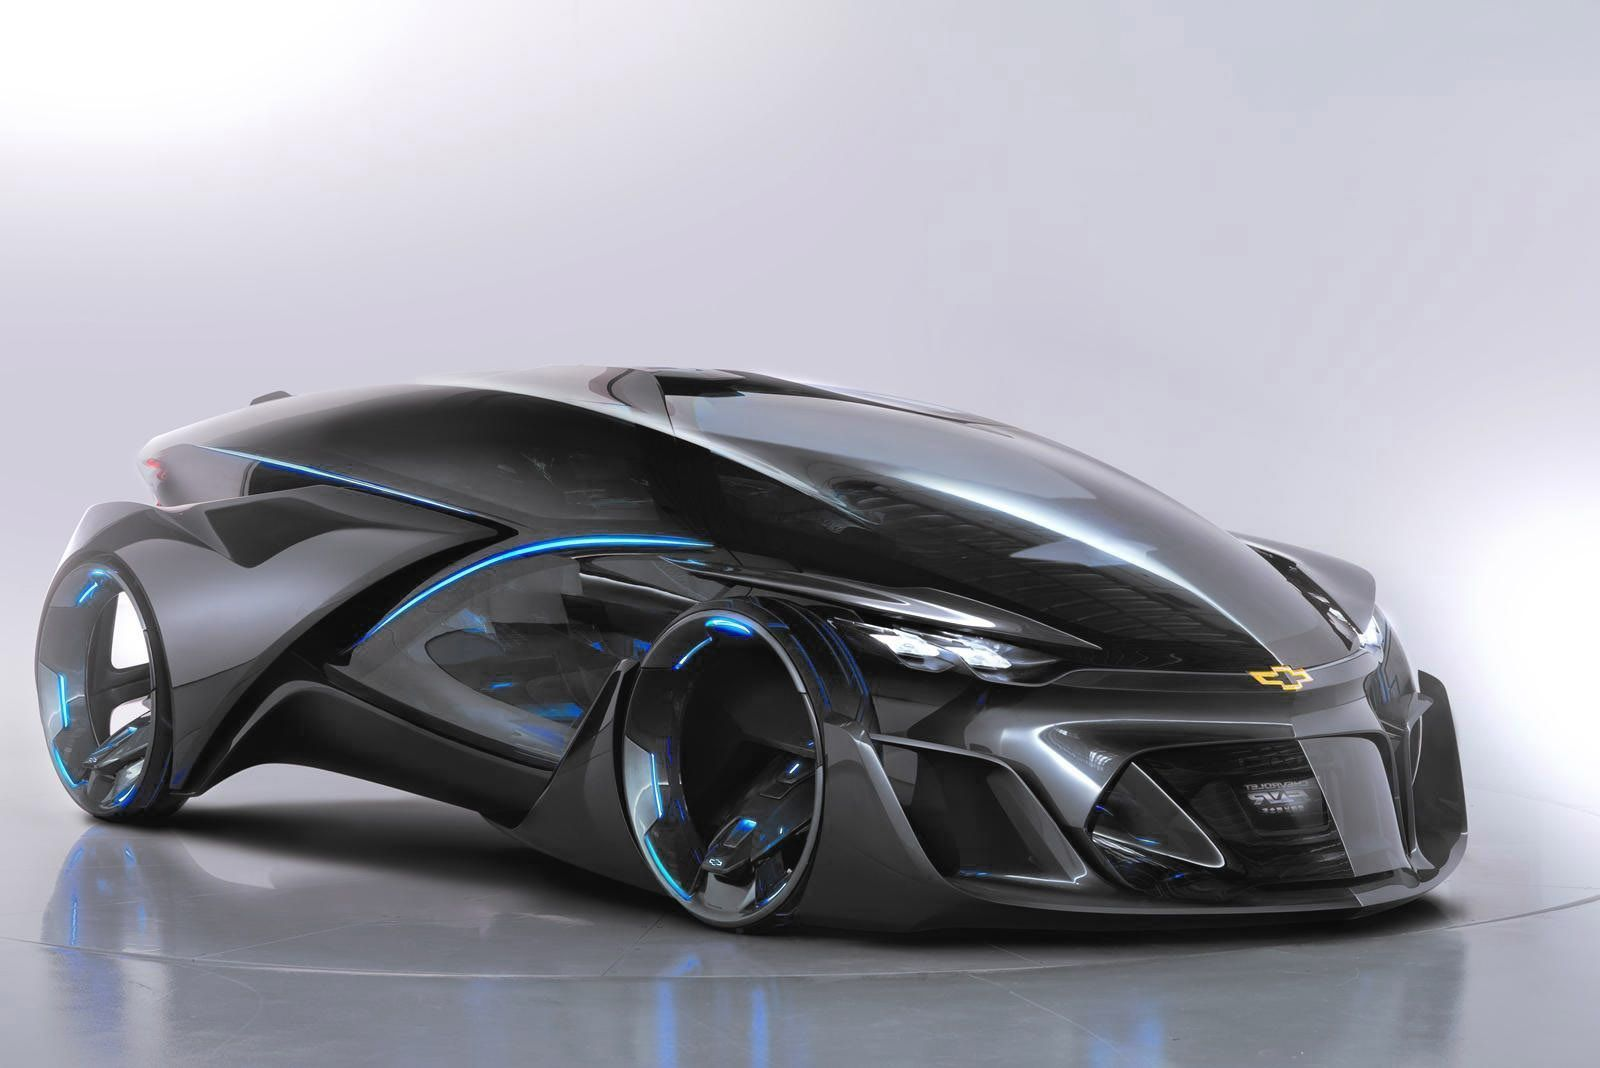 Chevrolet fnr concept car wallpaper hd detail carswall net